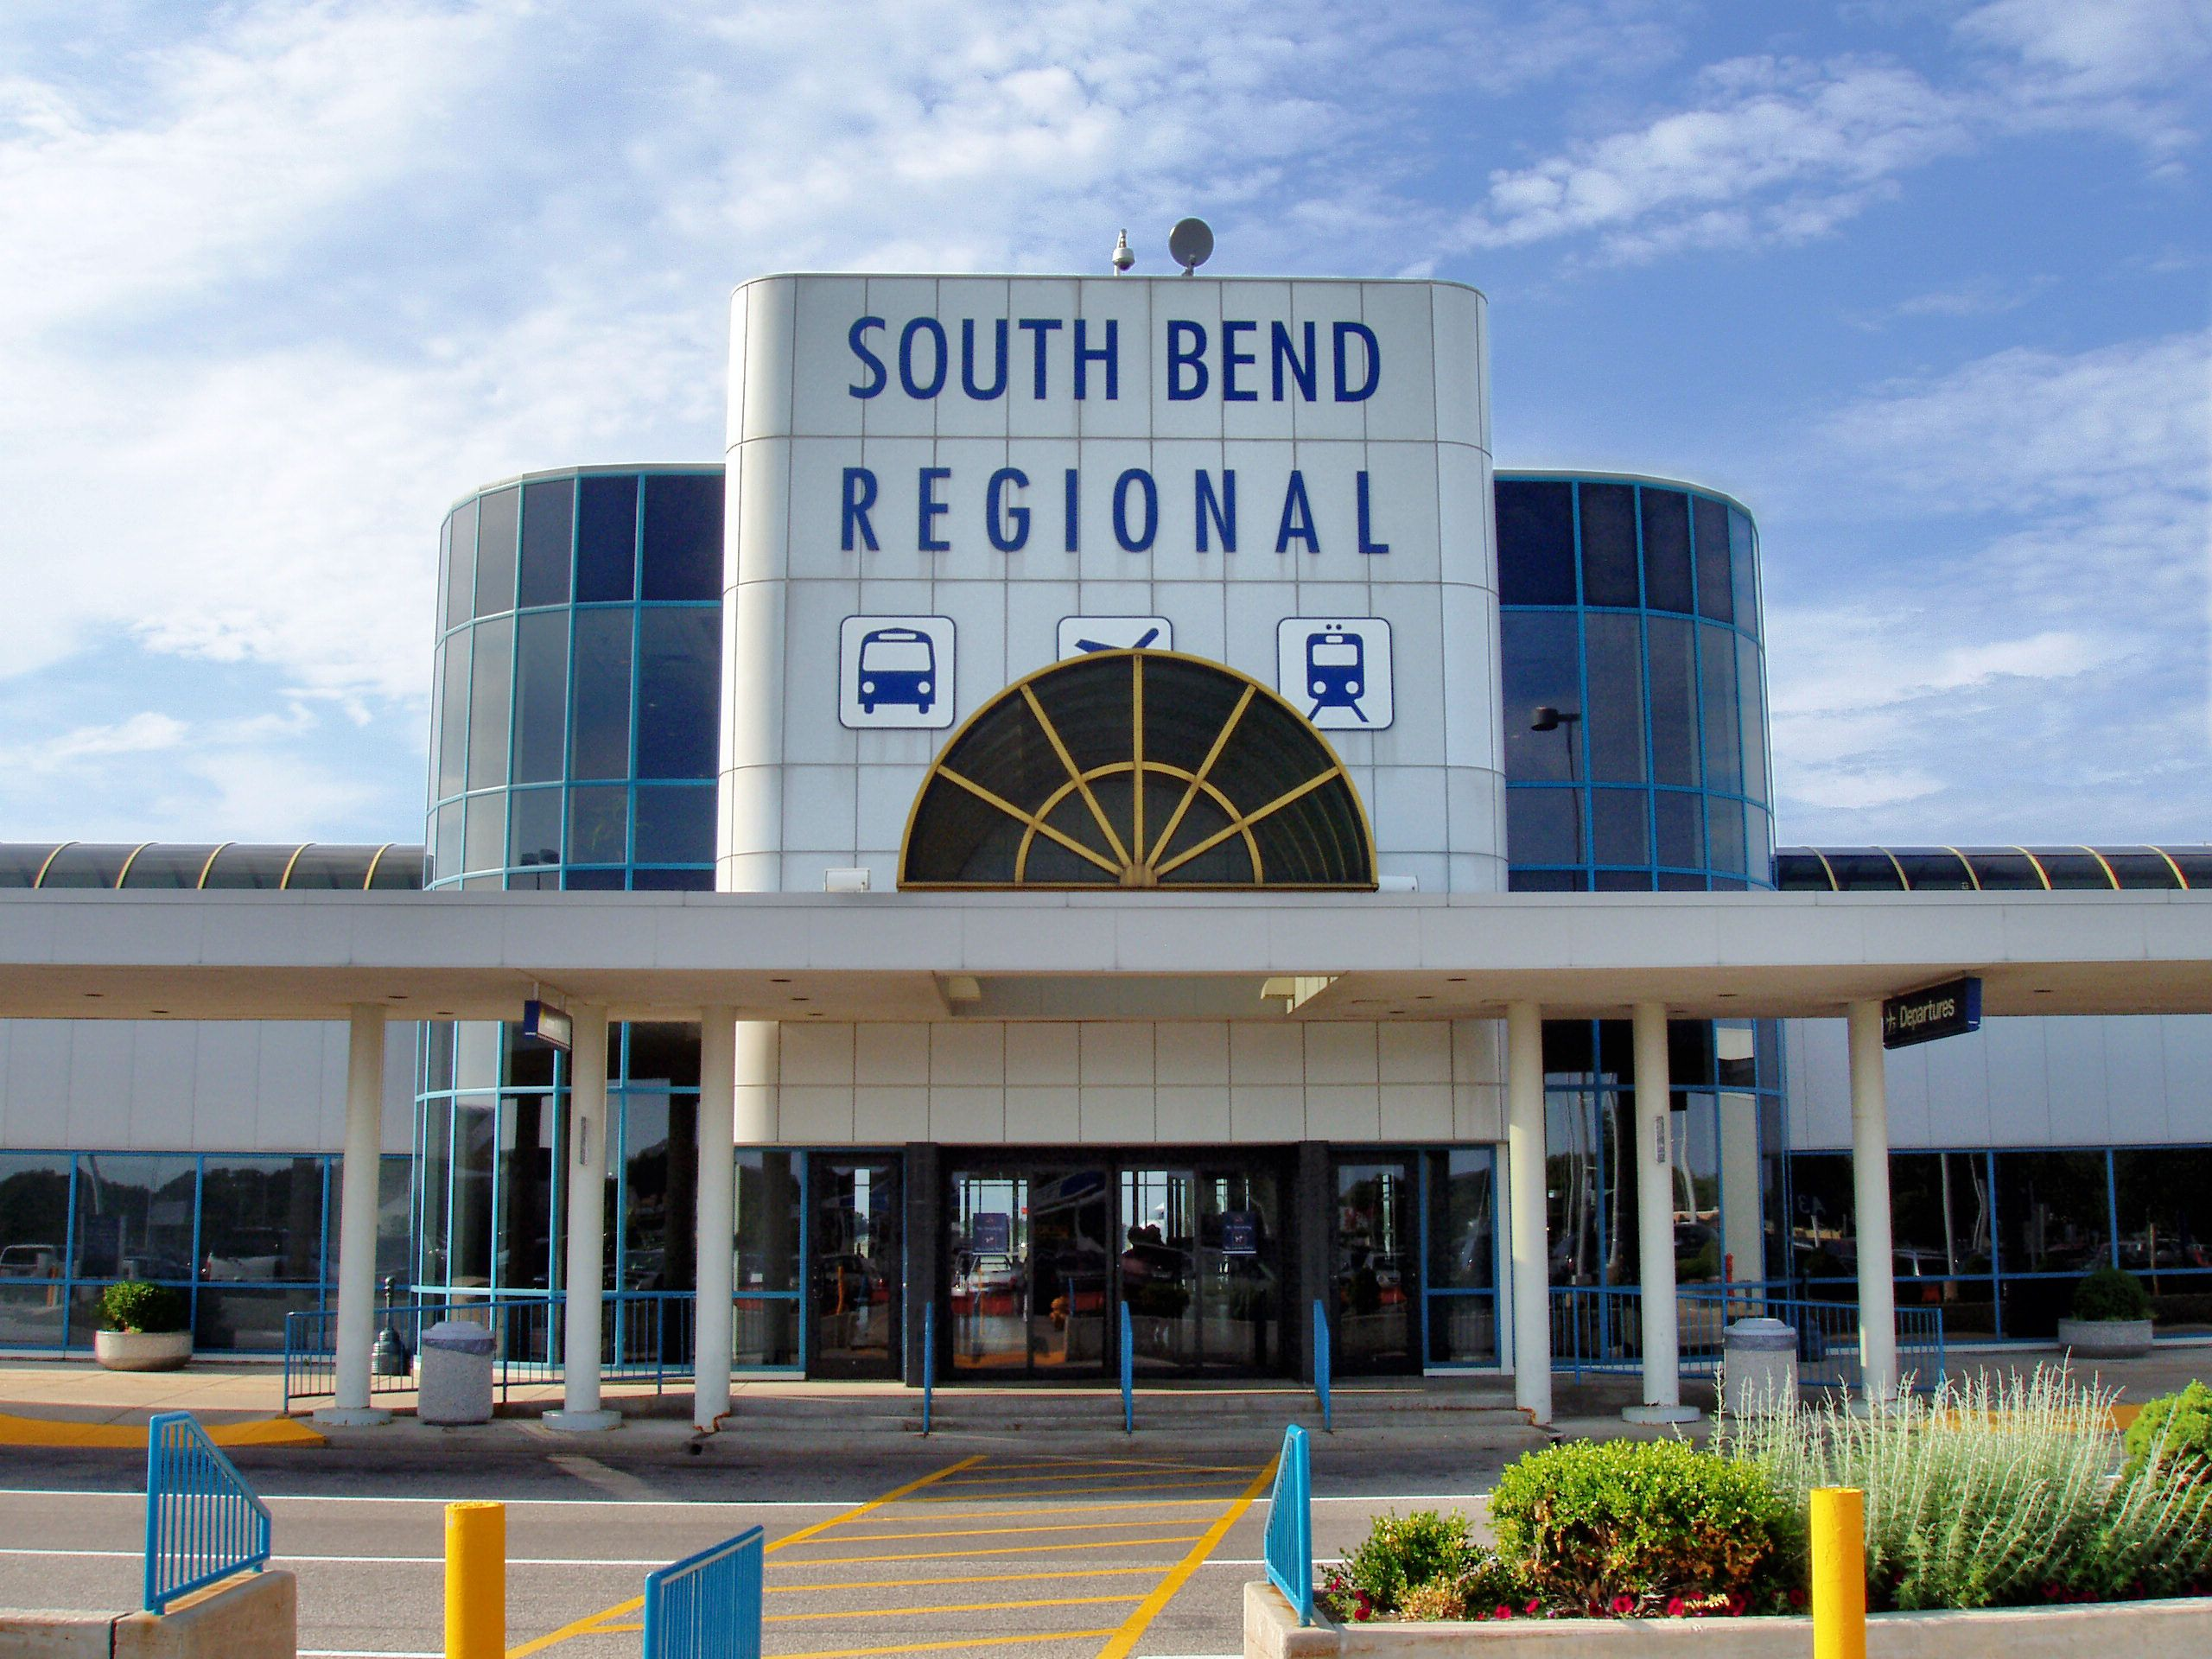 South Bend Airport South Bend Indiana Pinterest South Bend - Airports in indiana